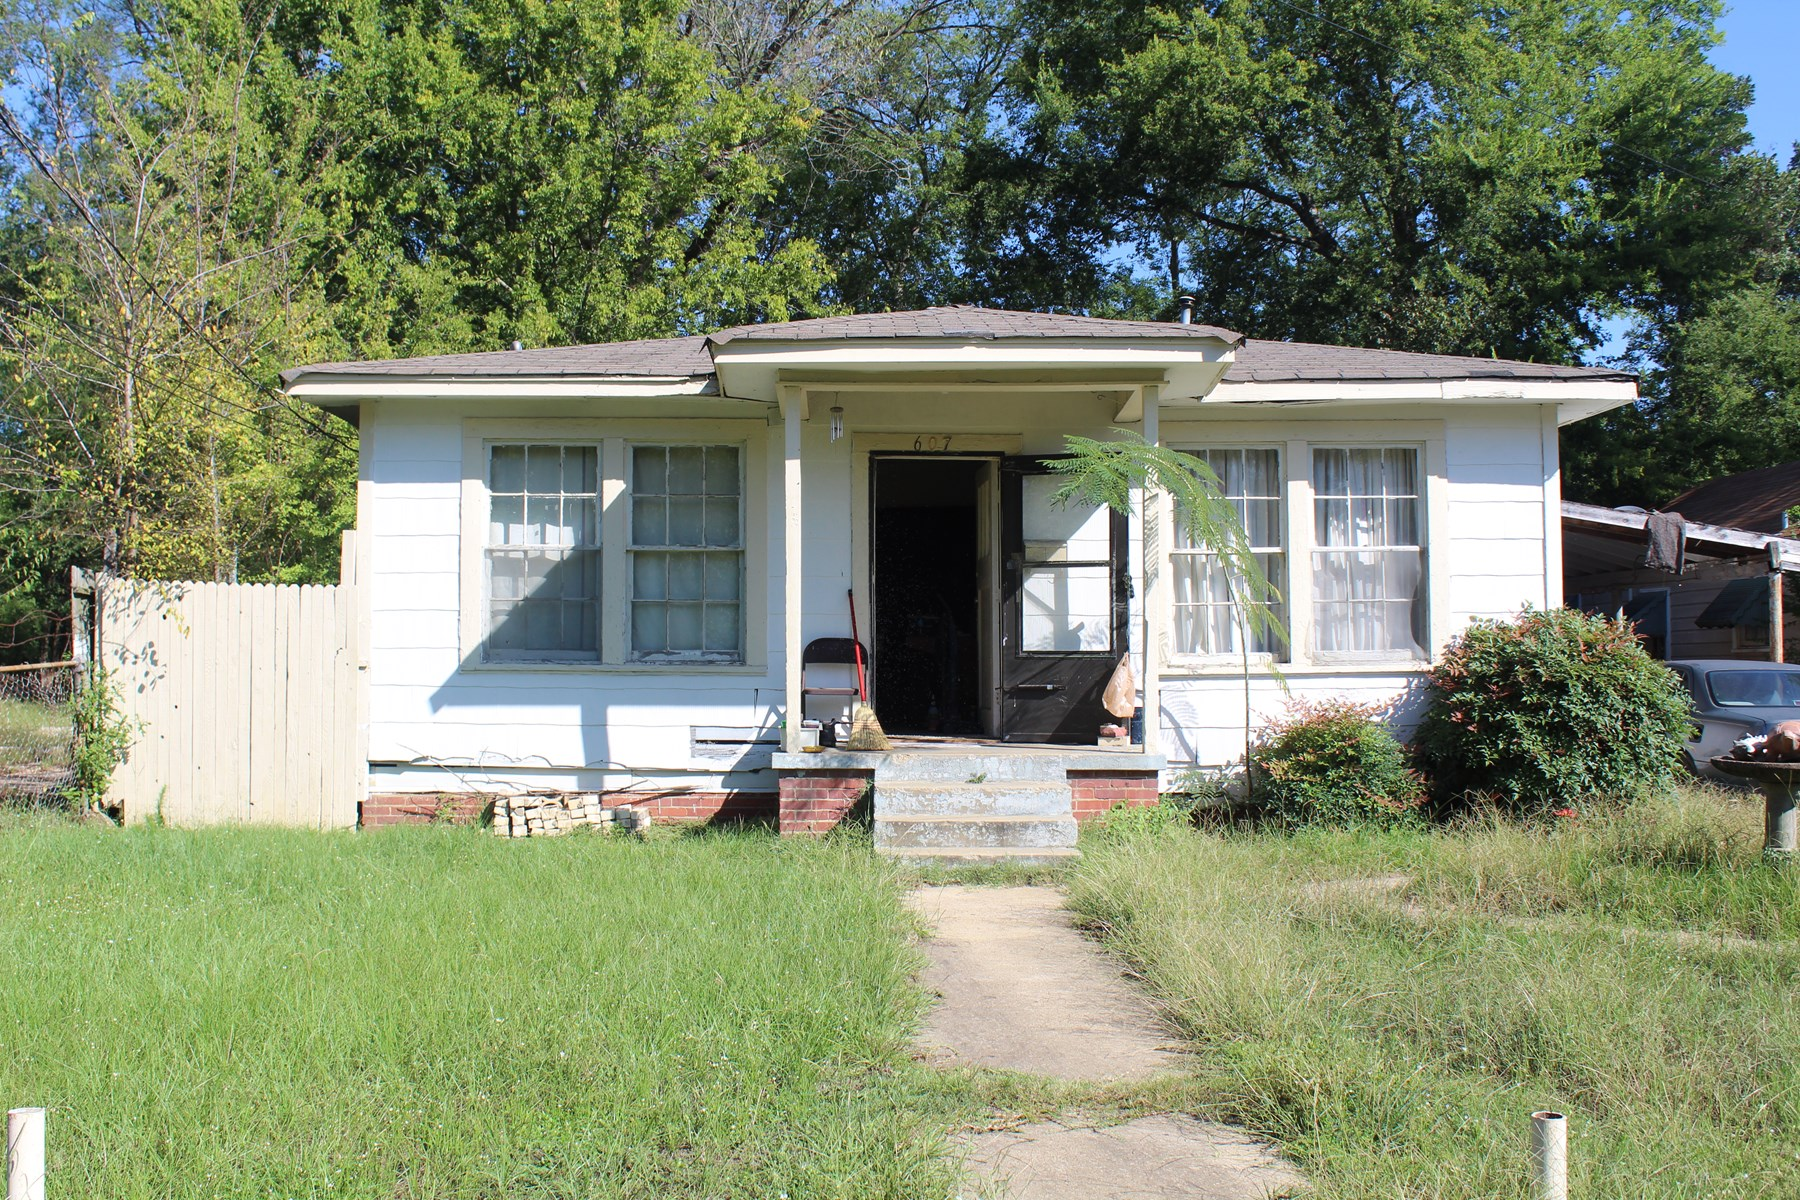 House for Sale In Longview, TX Handyman Special Investor